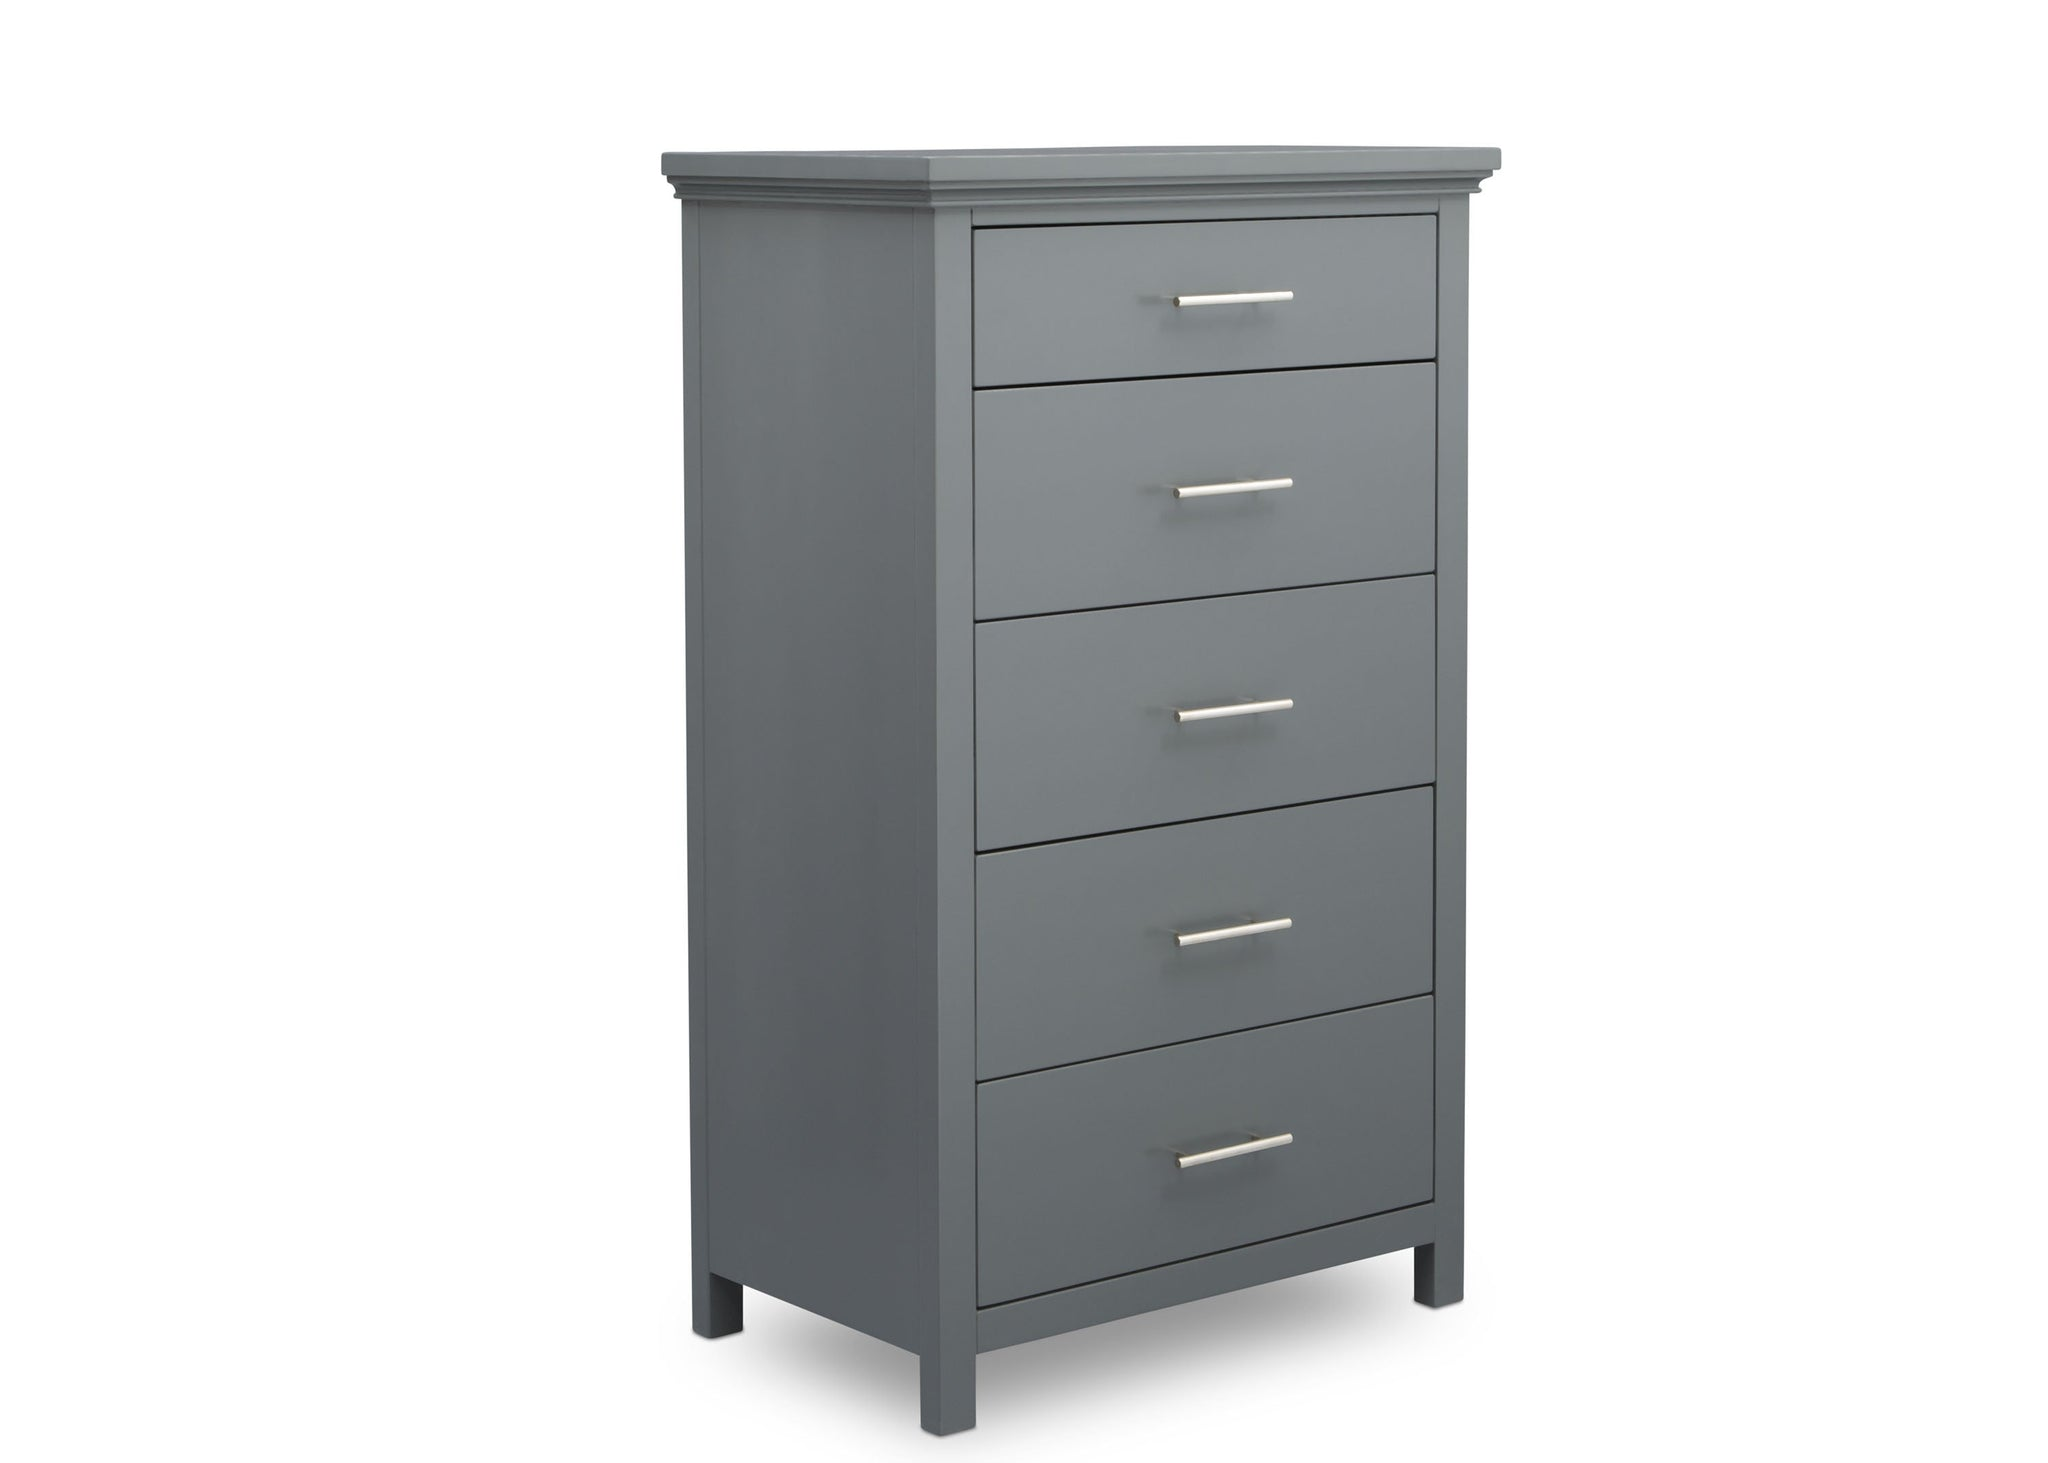 Delta Children Charcoal Grey (029) Avery 5 Drawer Chest (708050), Sideview, a3a